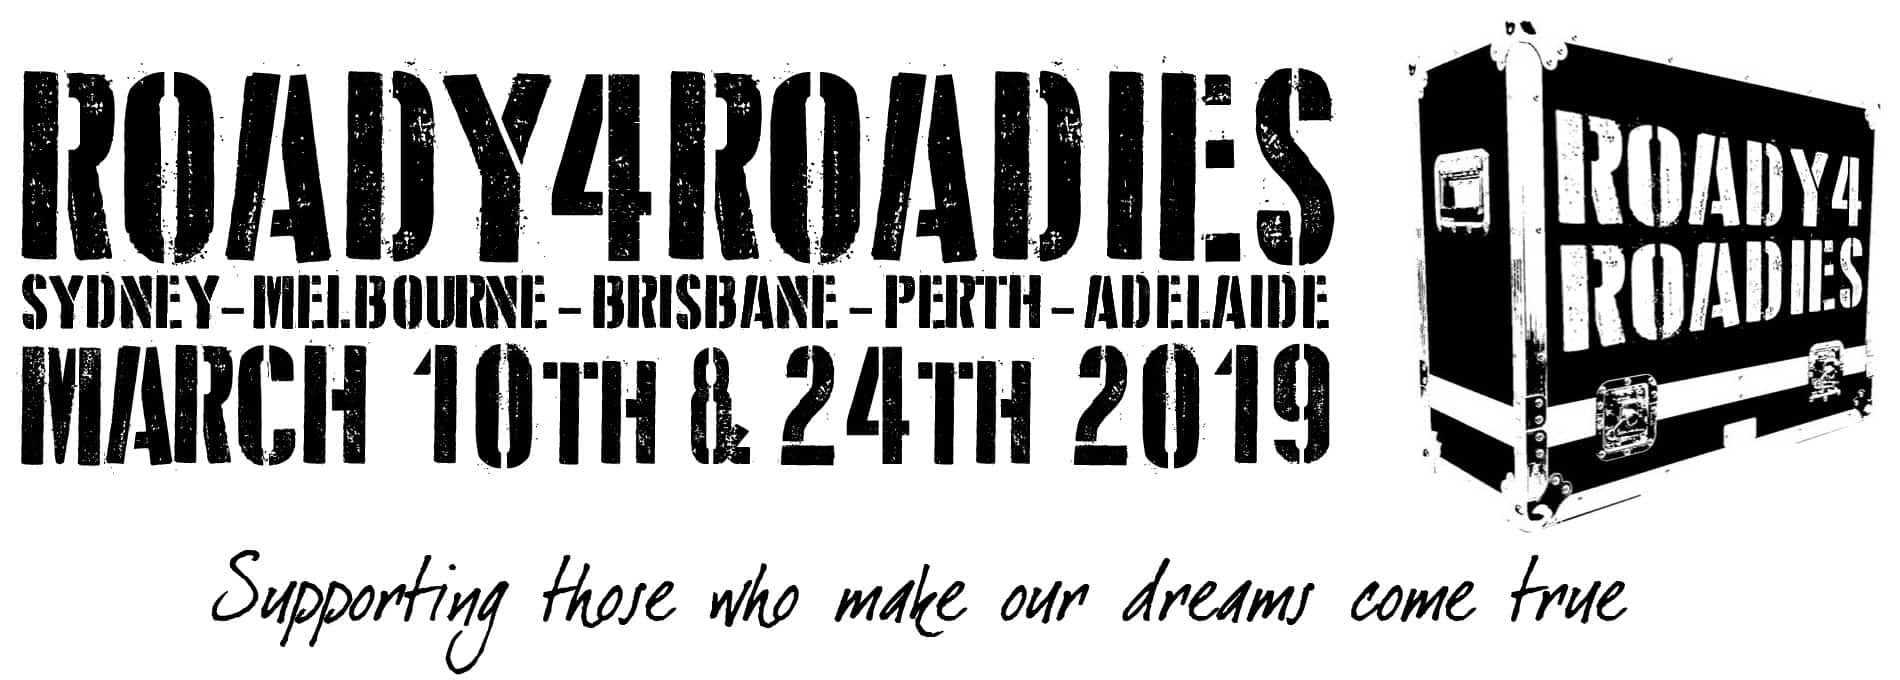 Scene News: Roady4Roadies venues and artists confirmed!